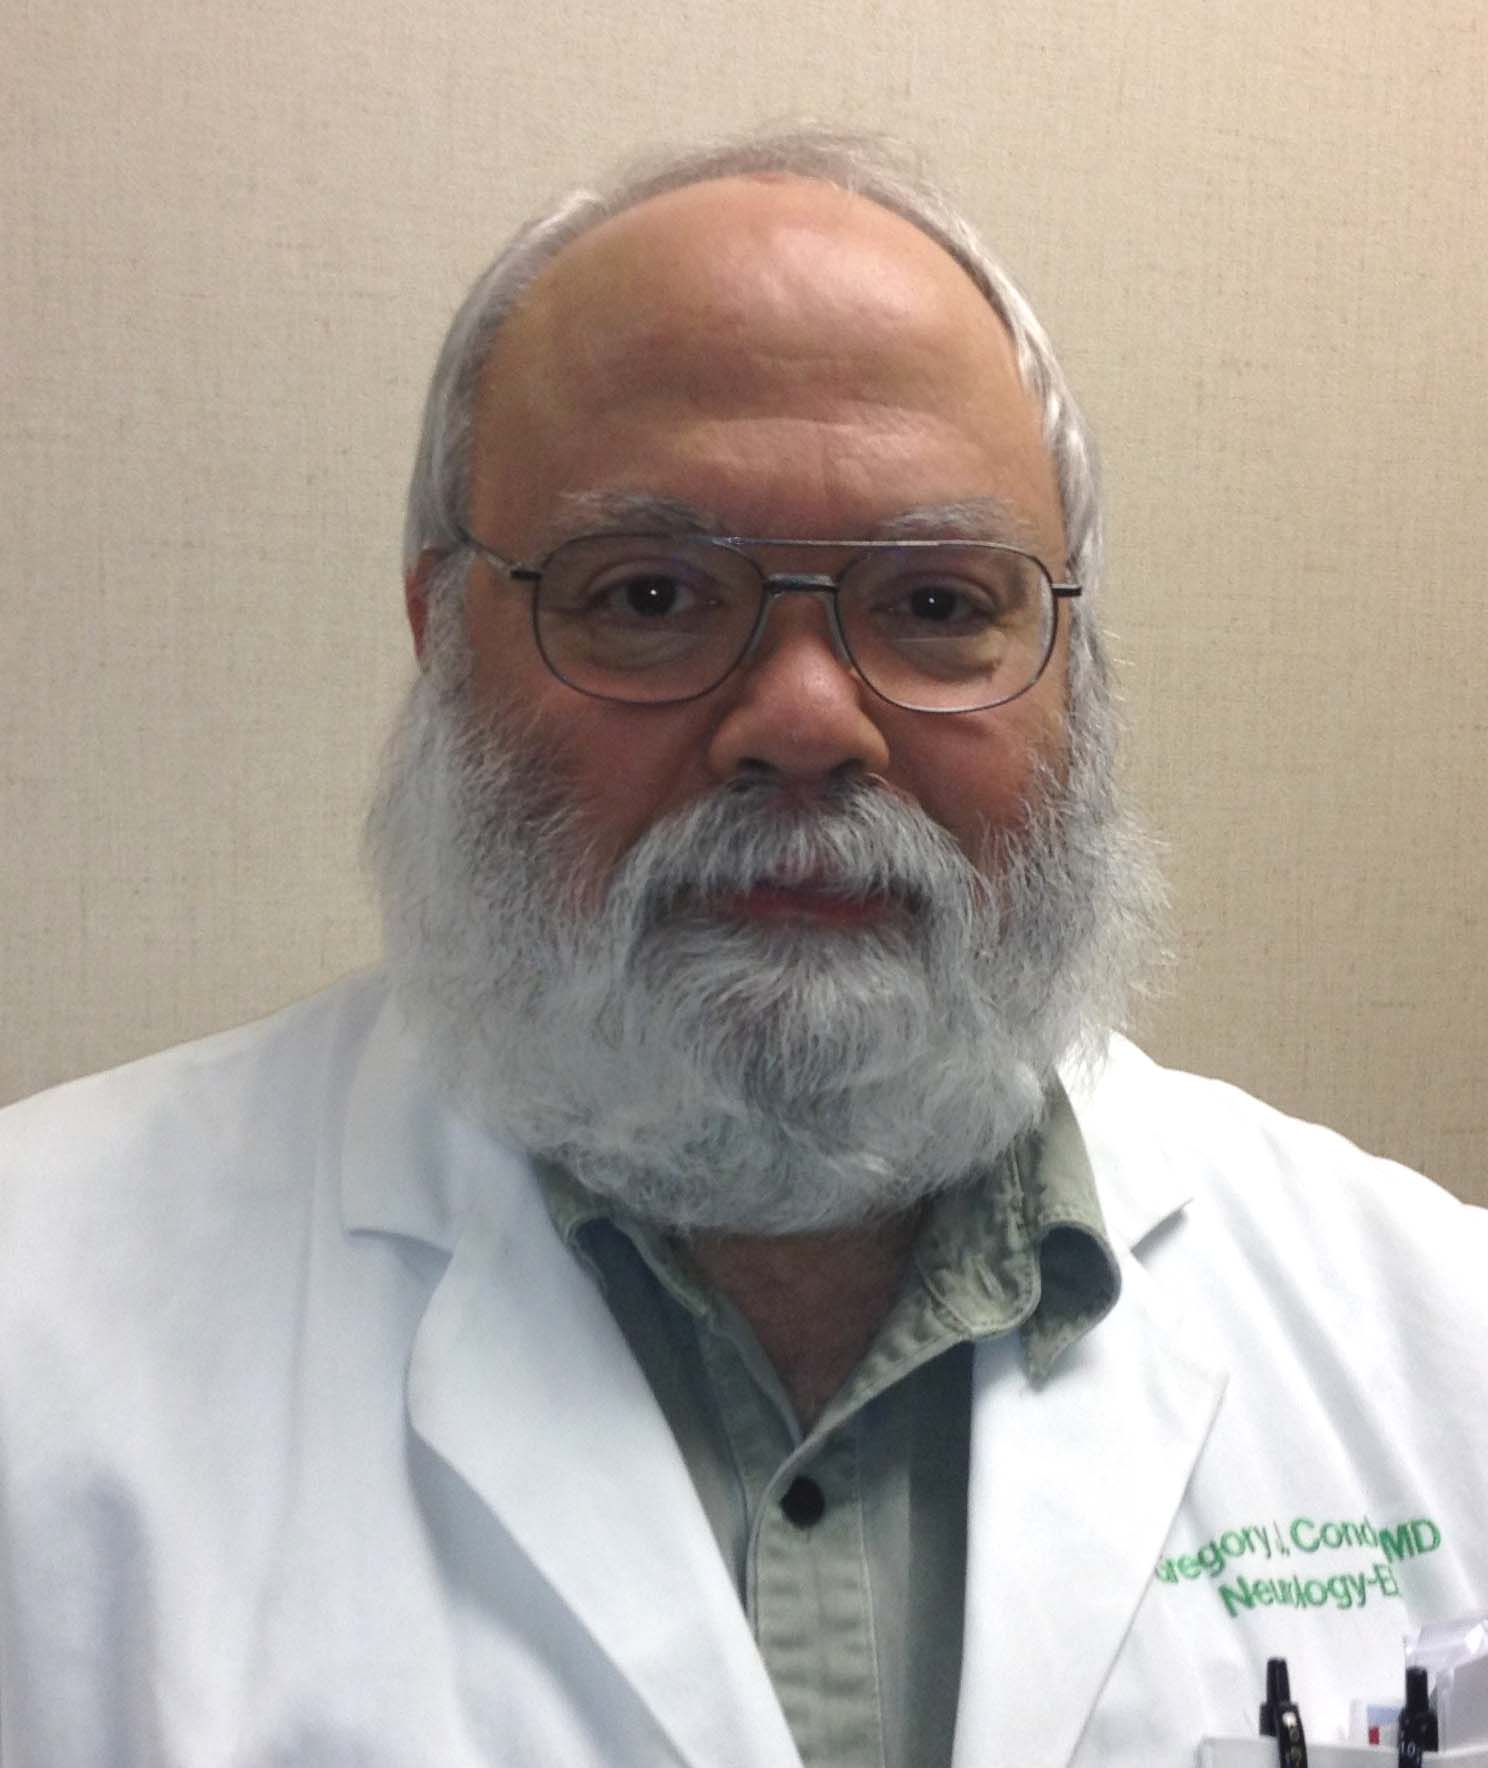 Gregory Condon, MD